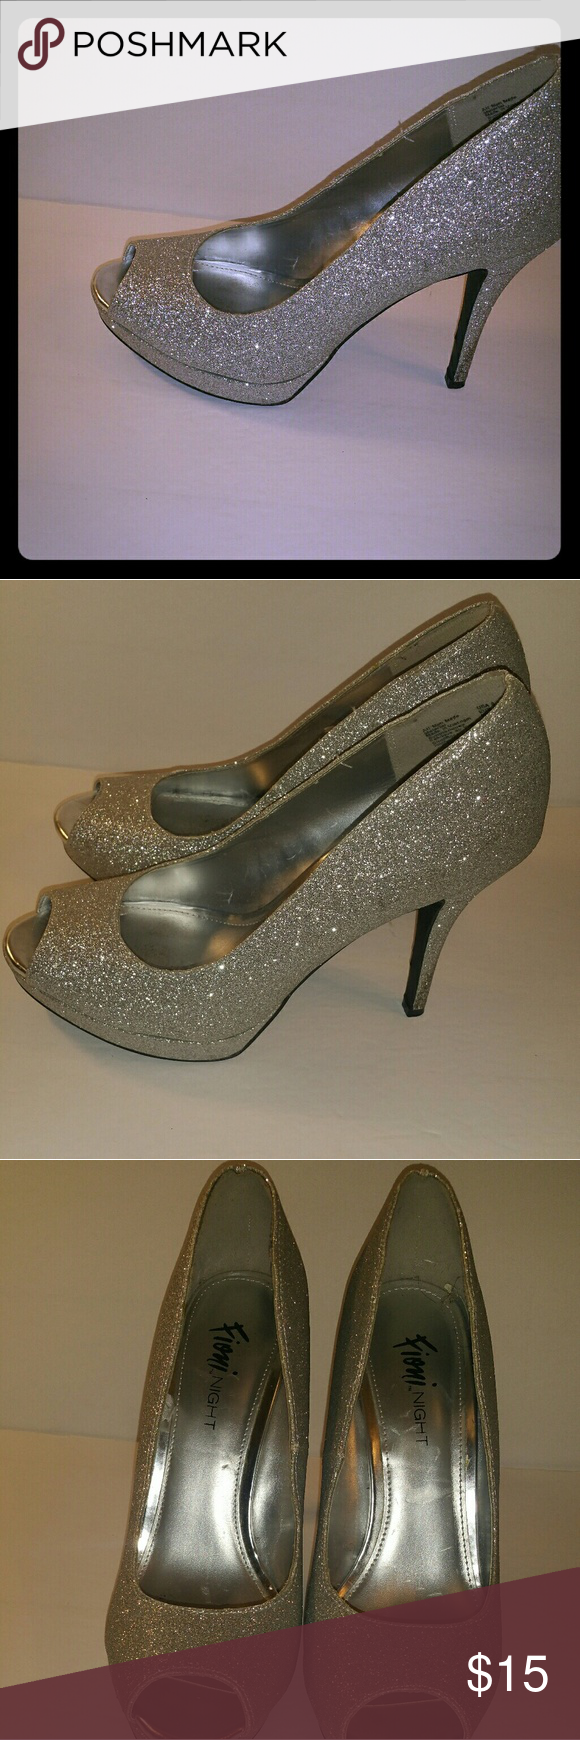 90fdf5e5502 Fioni night shoes Fioni night shoes sparkly silver dress heels open ...